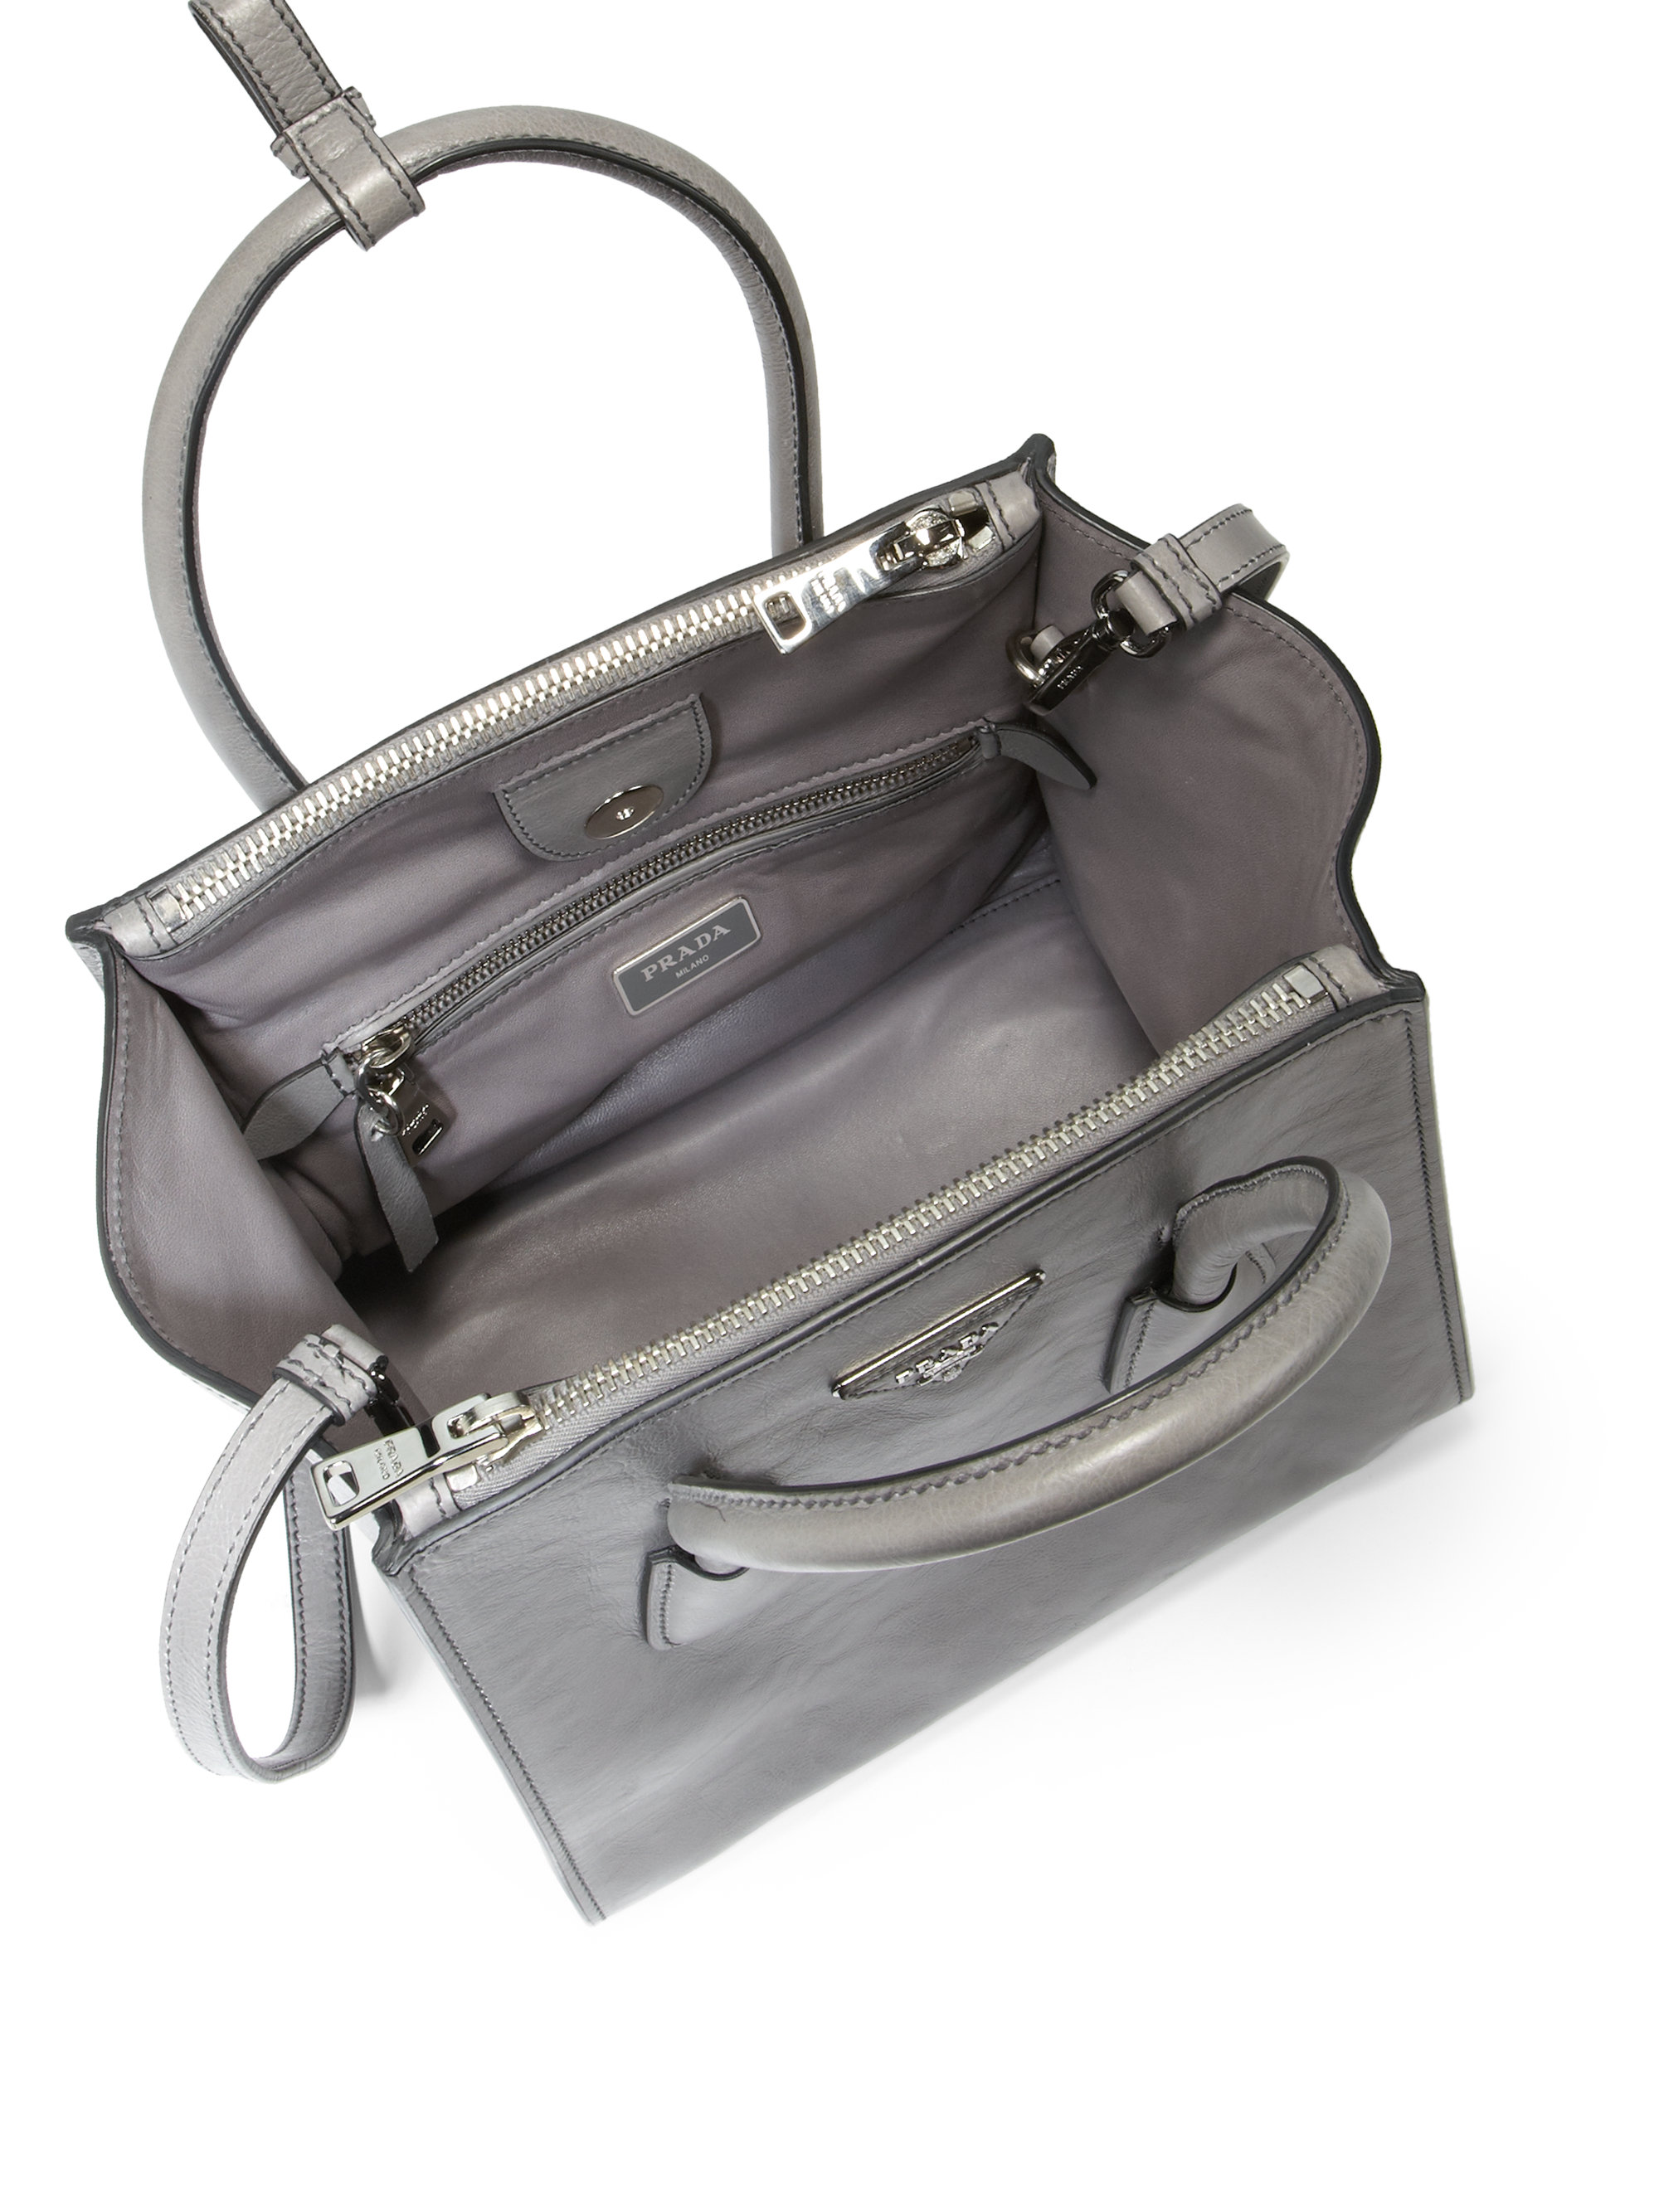 d7b5863a11ac Prada Glace Calf Small Twin Pocket Tote in Gray - Lyst